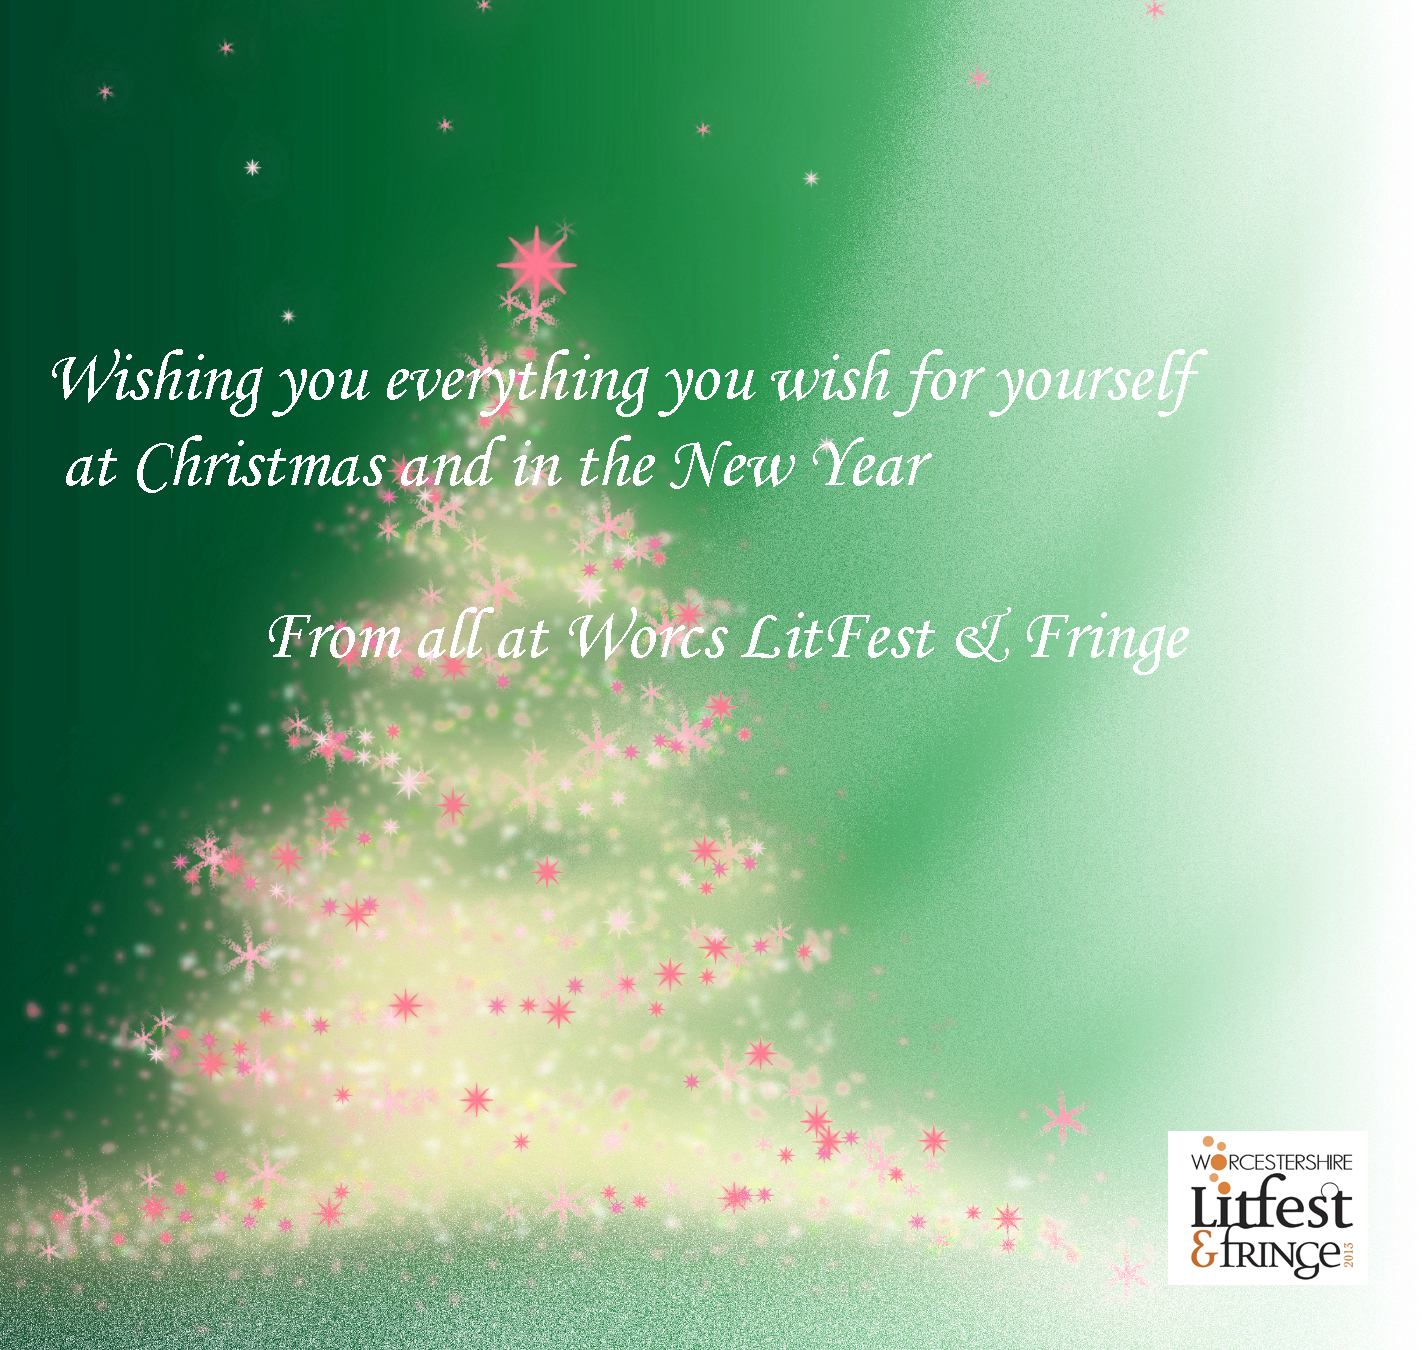 Best Wishes for Christmas and the New Year – Worcestershire ...